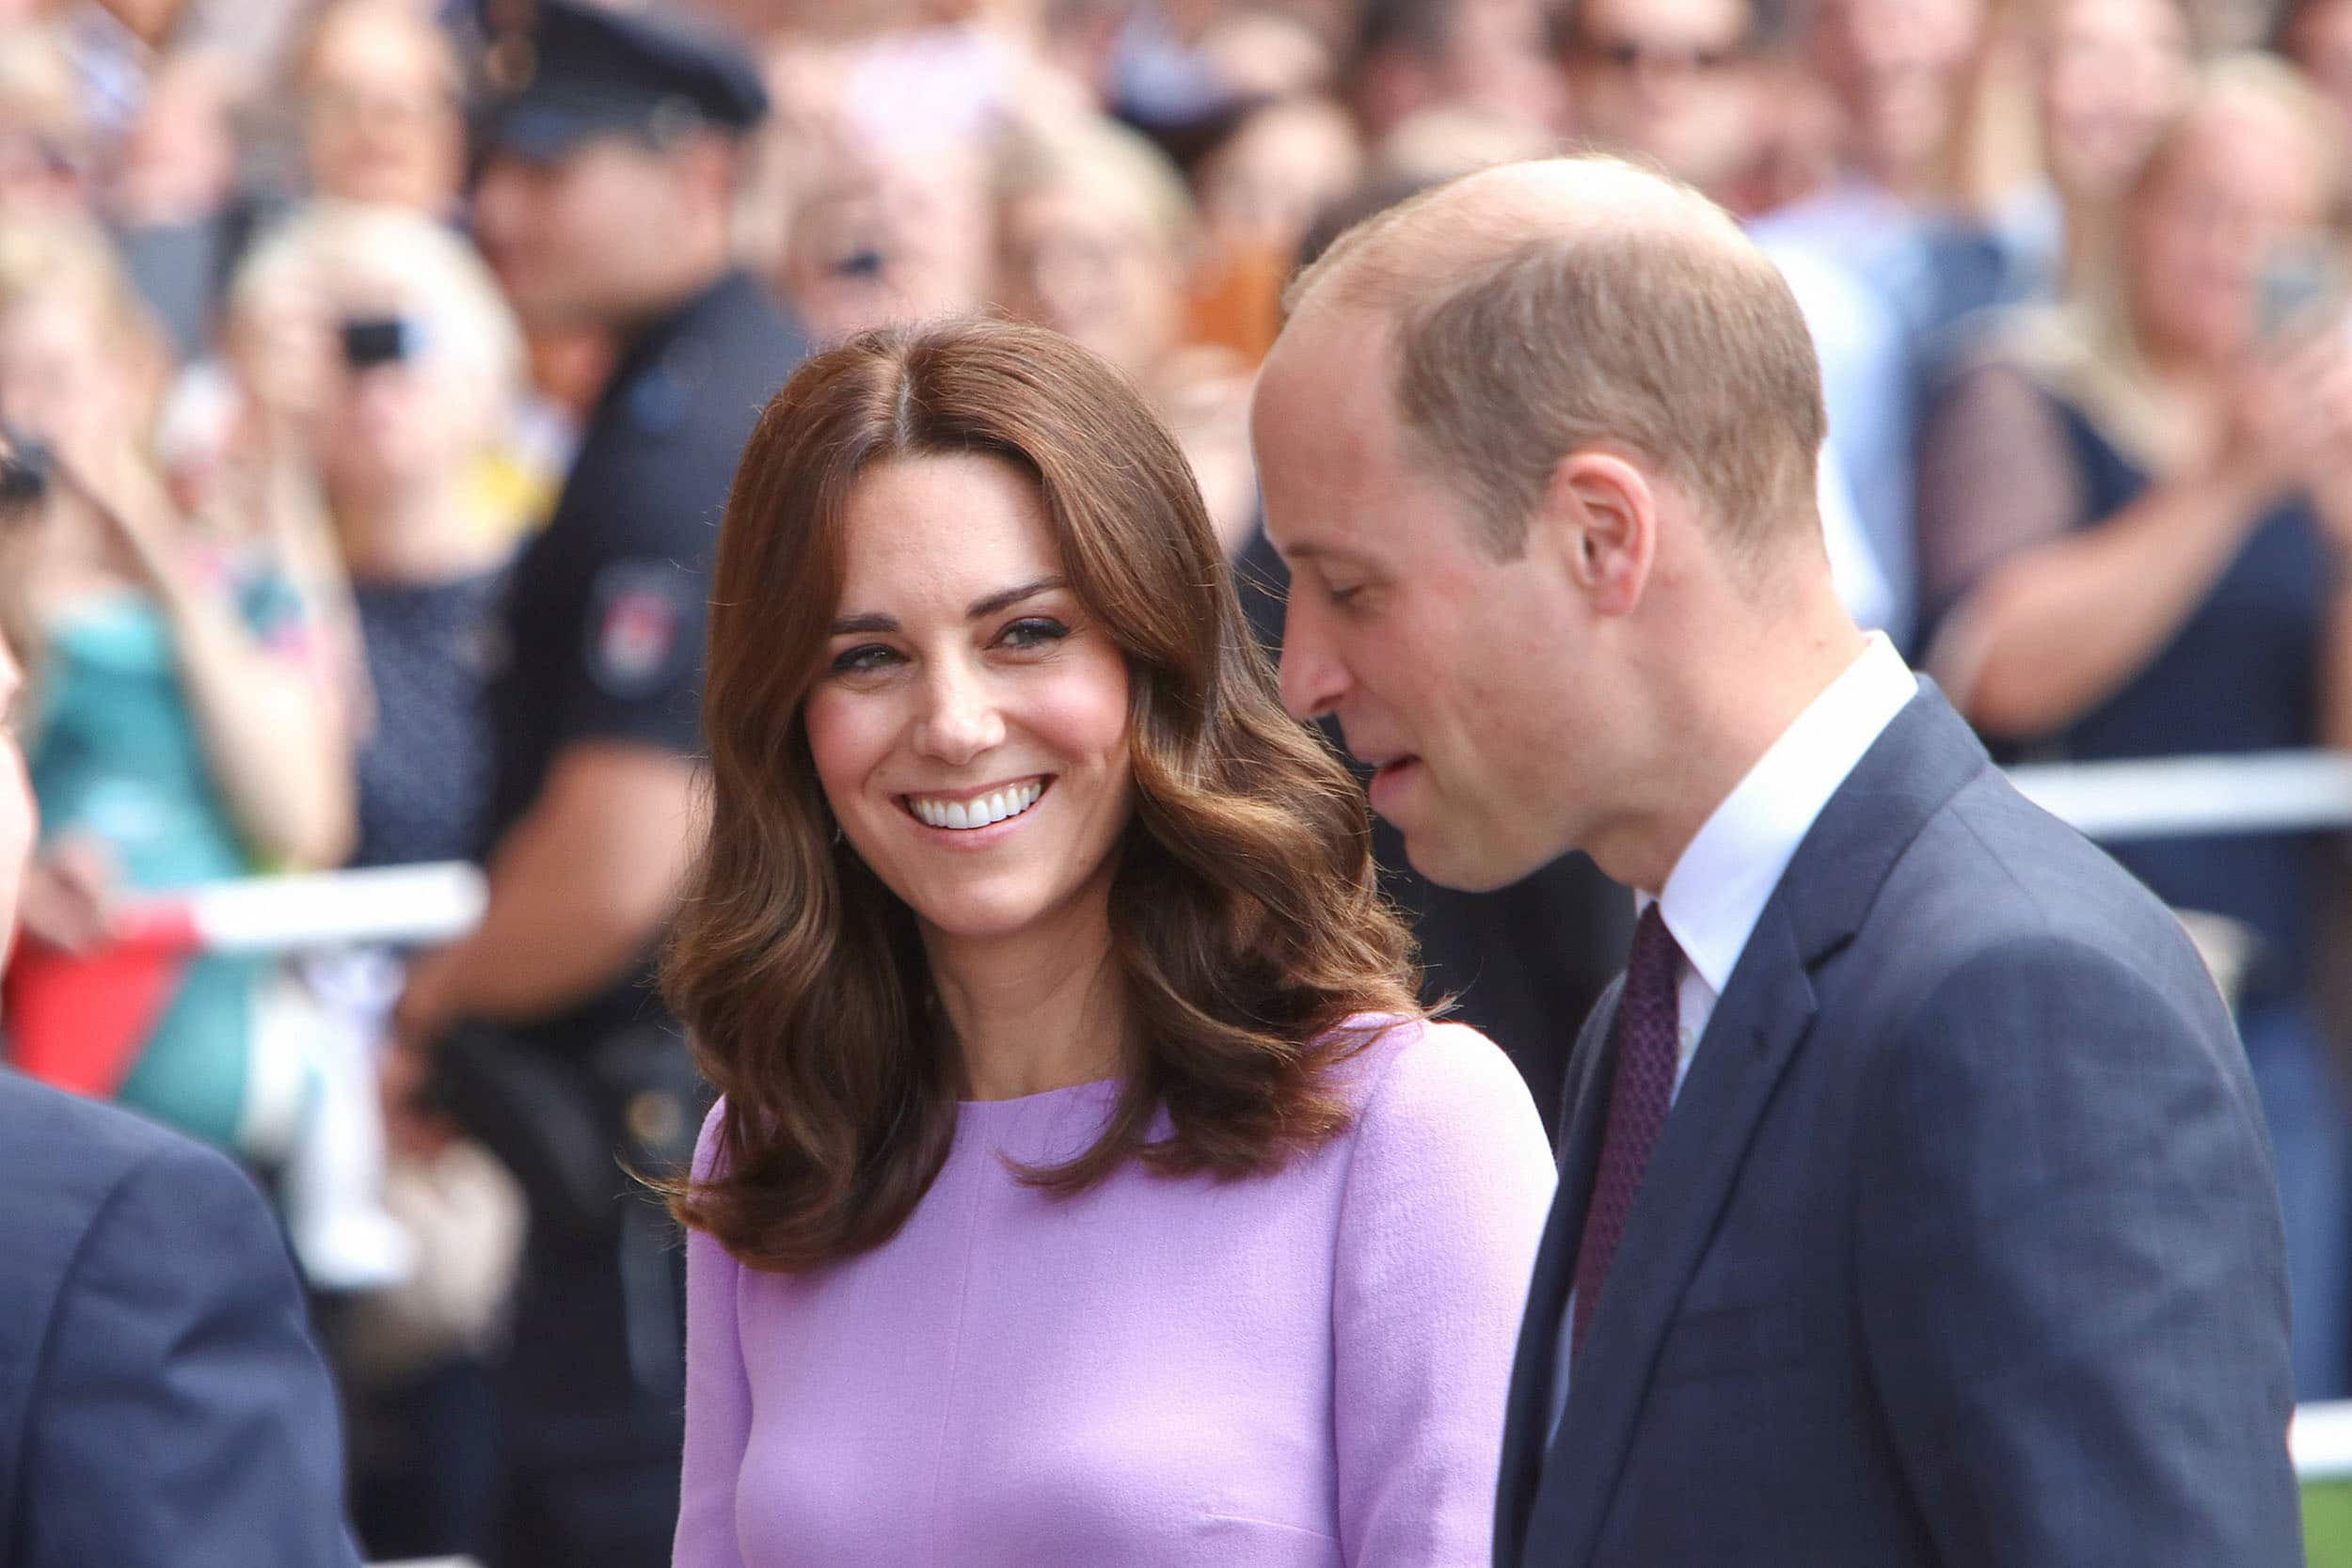 Prinz William Duke of Cambridge and Herzogin Kate Duchess of Cambridge- The Duke and Duchess of Cambridge Visit International Maritime Museum Hamburg